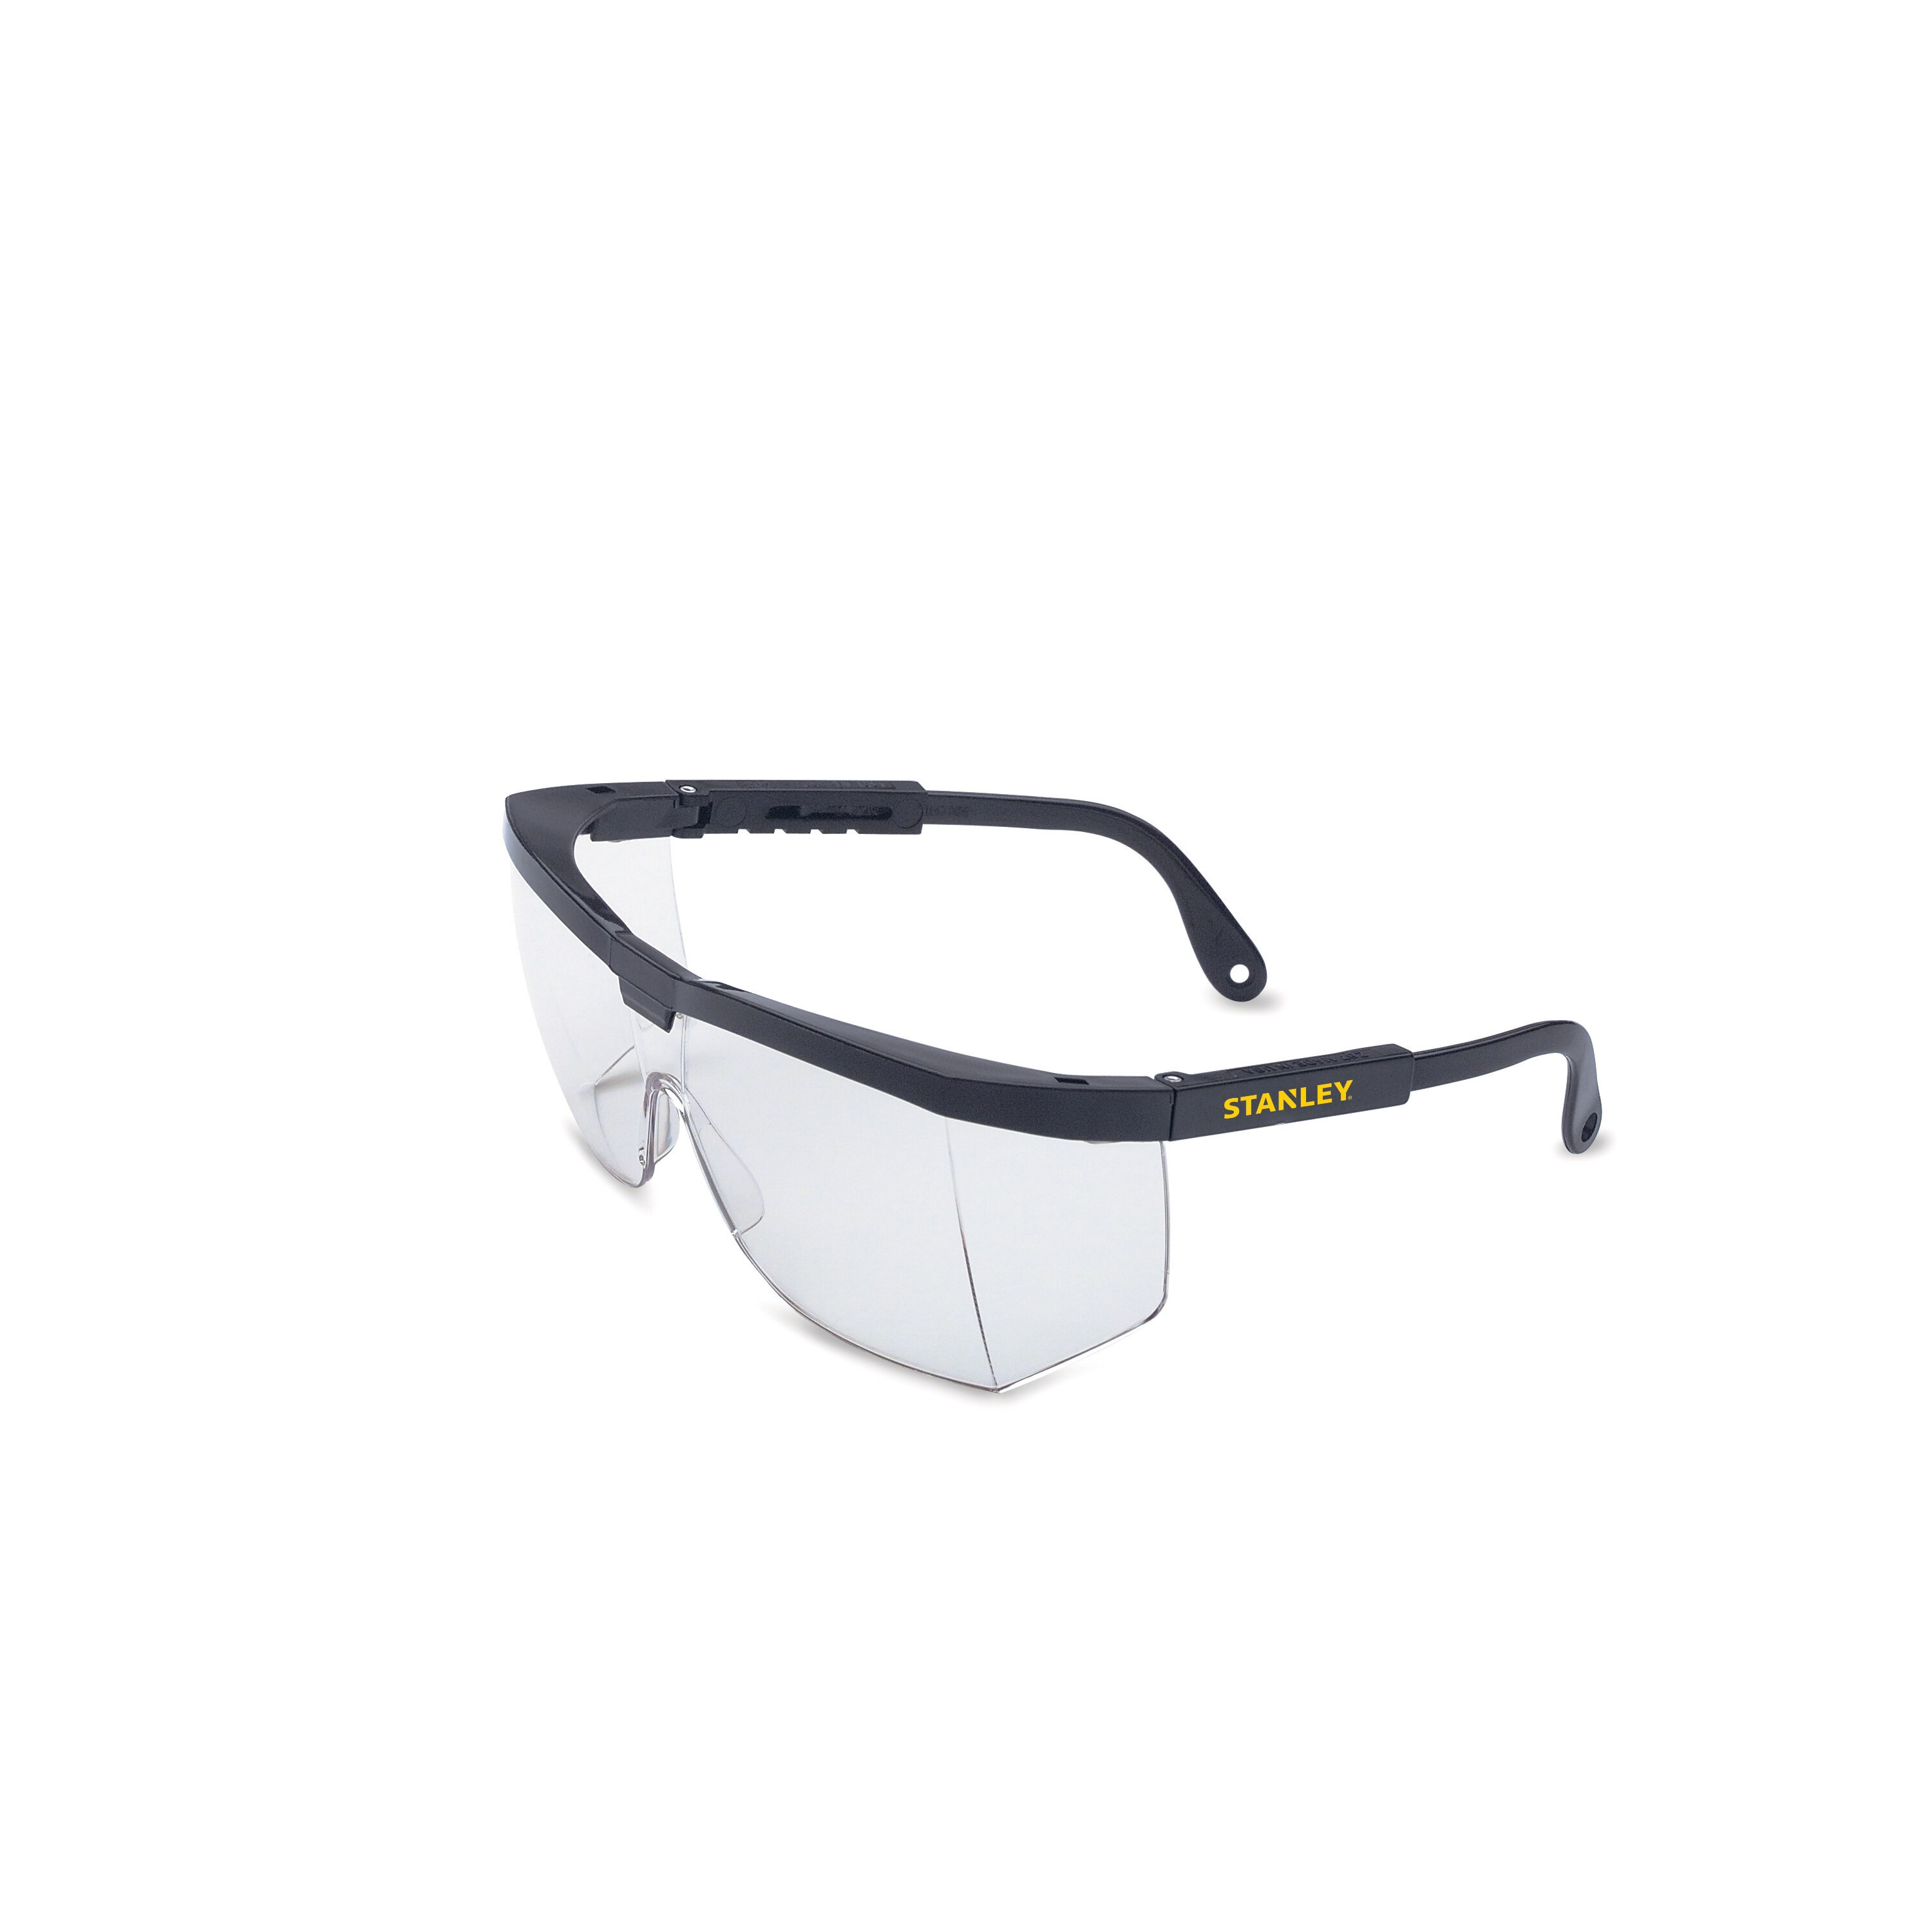 Stanley Tools - A200 Series Economy Safety Glasses Clear Lens - RST-61003